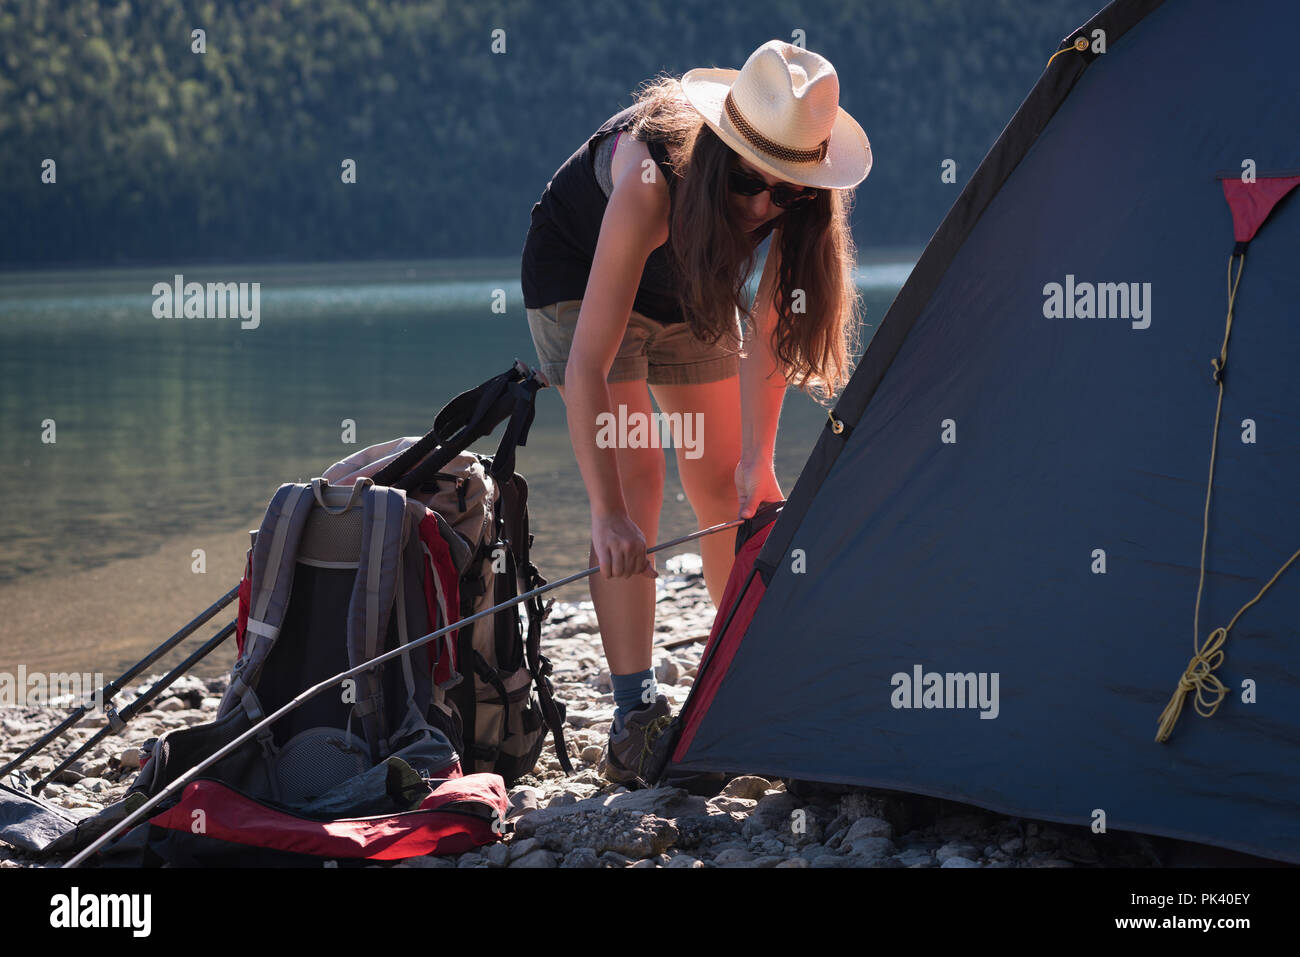 Woman setting up tent - Stock Image